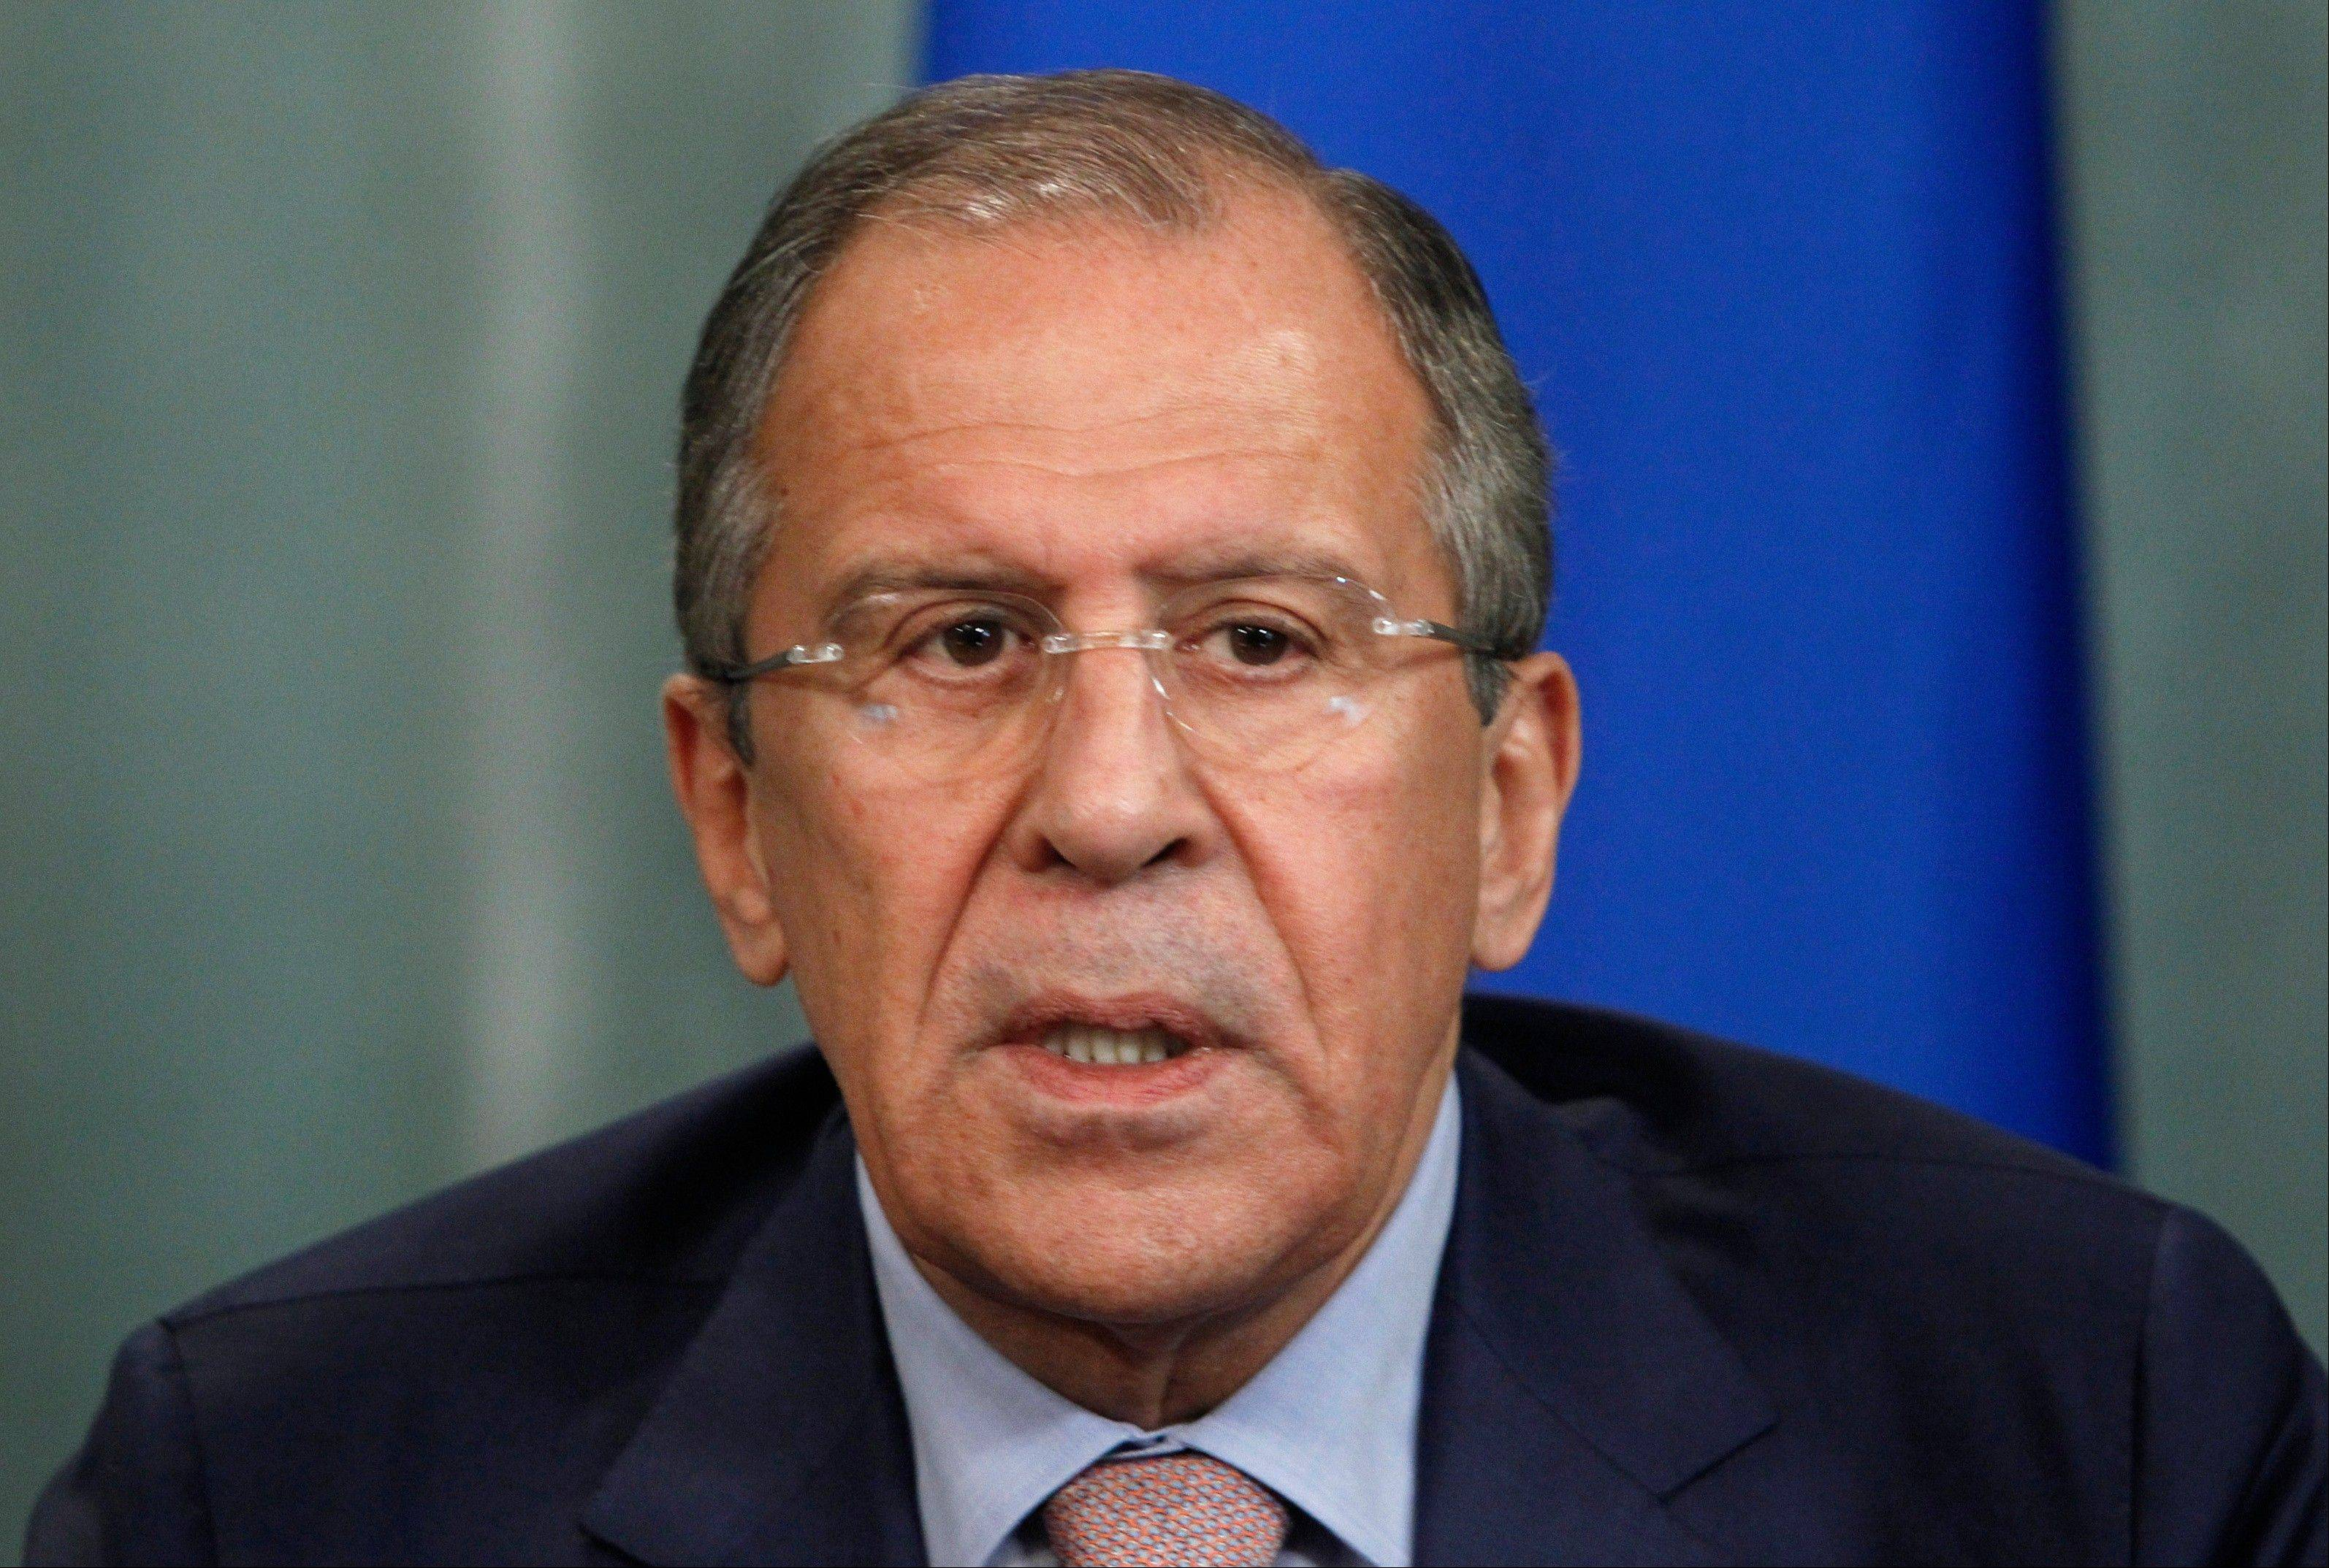 Russia�s Foreign Minister Sergey Lavrov on Tuesday bluntly rejected U.S. demands to extradite National Security Agency leaker Edward Snowden, saying Snowden hasn�t crossed the Russian border as he seeks to evade prosecution.